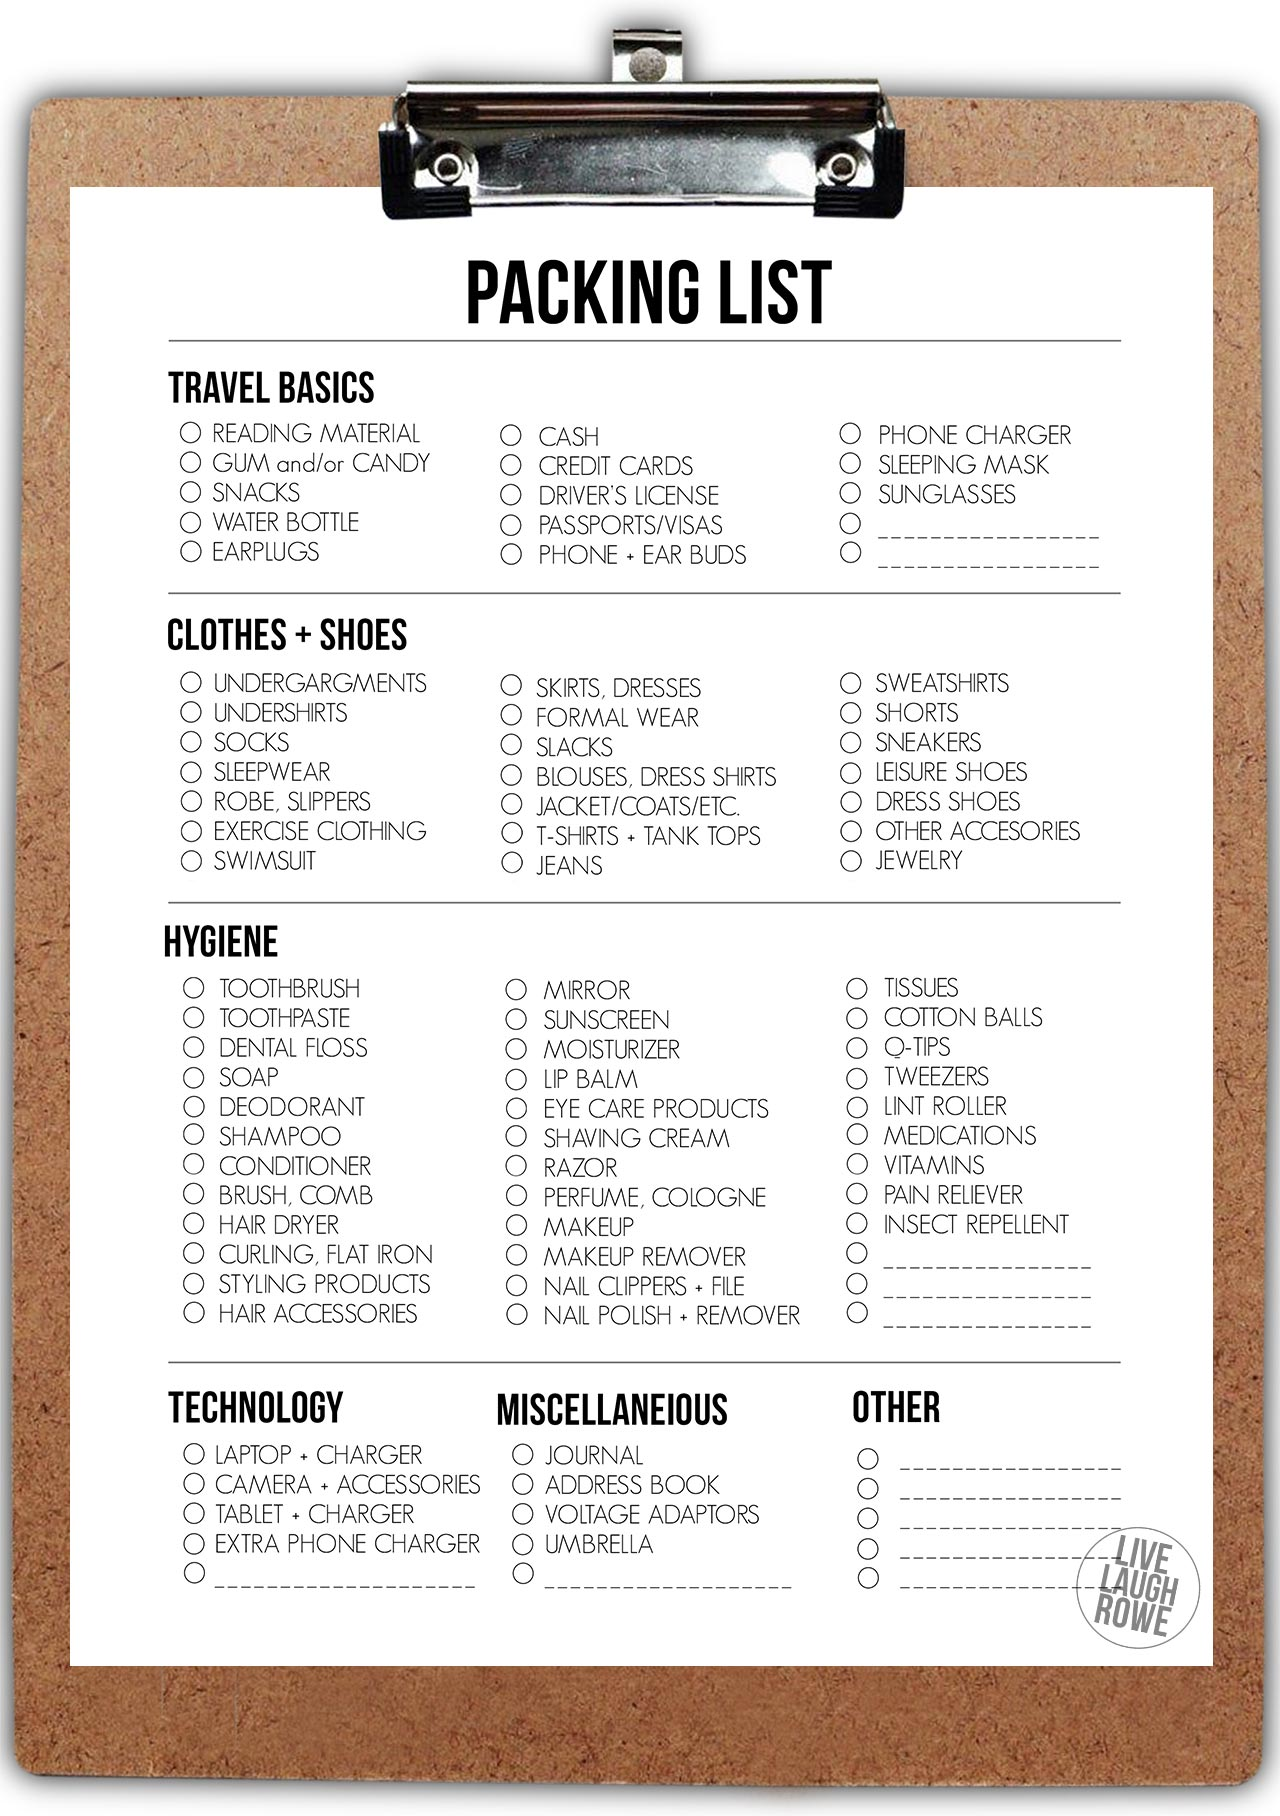 Packing List on Clipboard